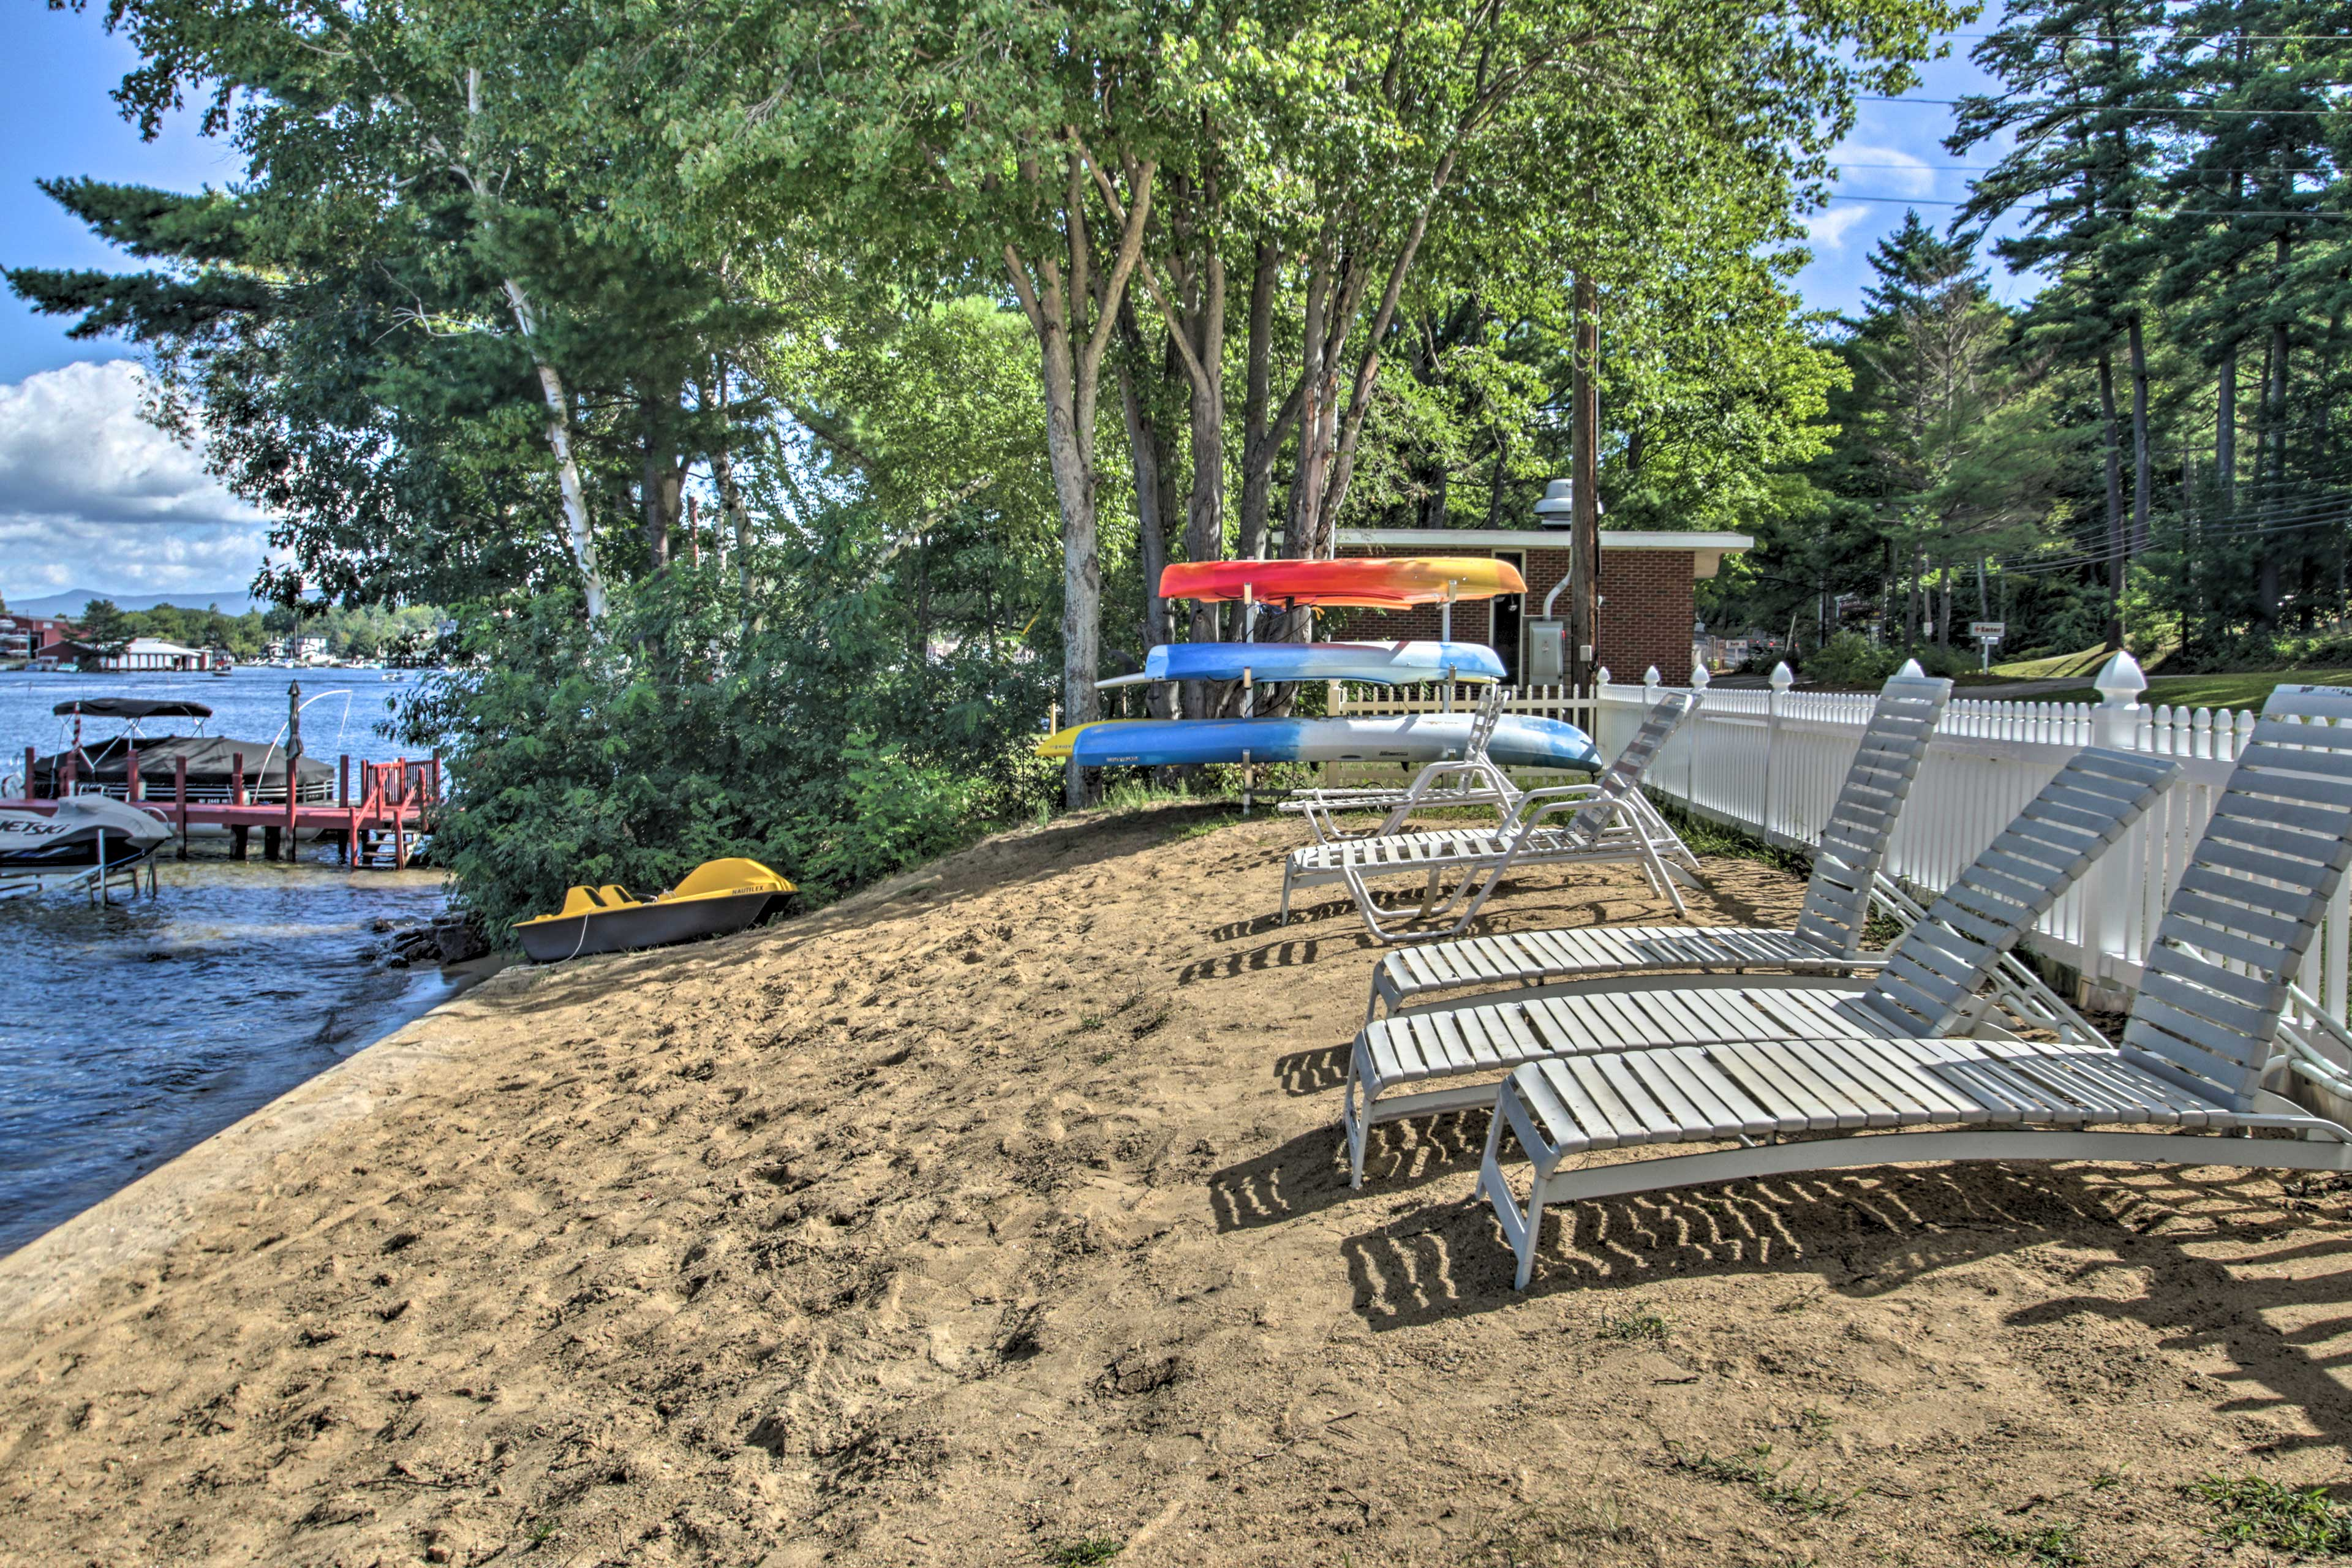 Head down to the lakeshore to lounge in the sand.